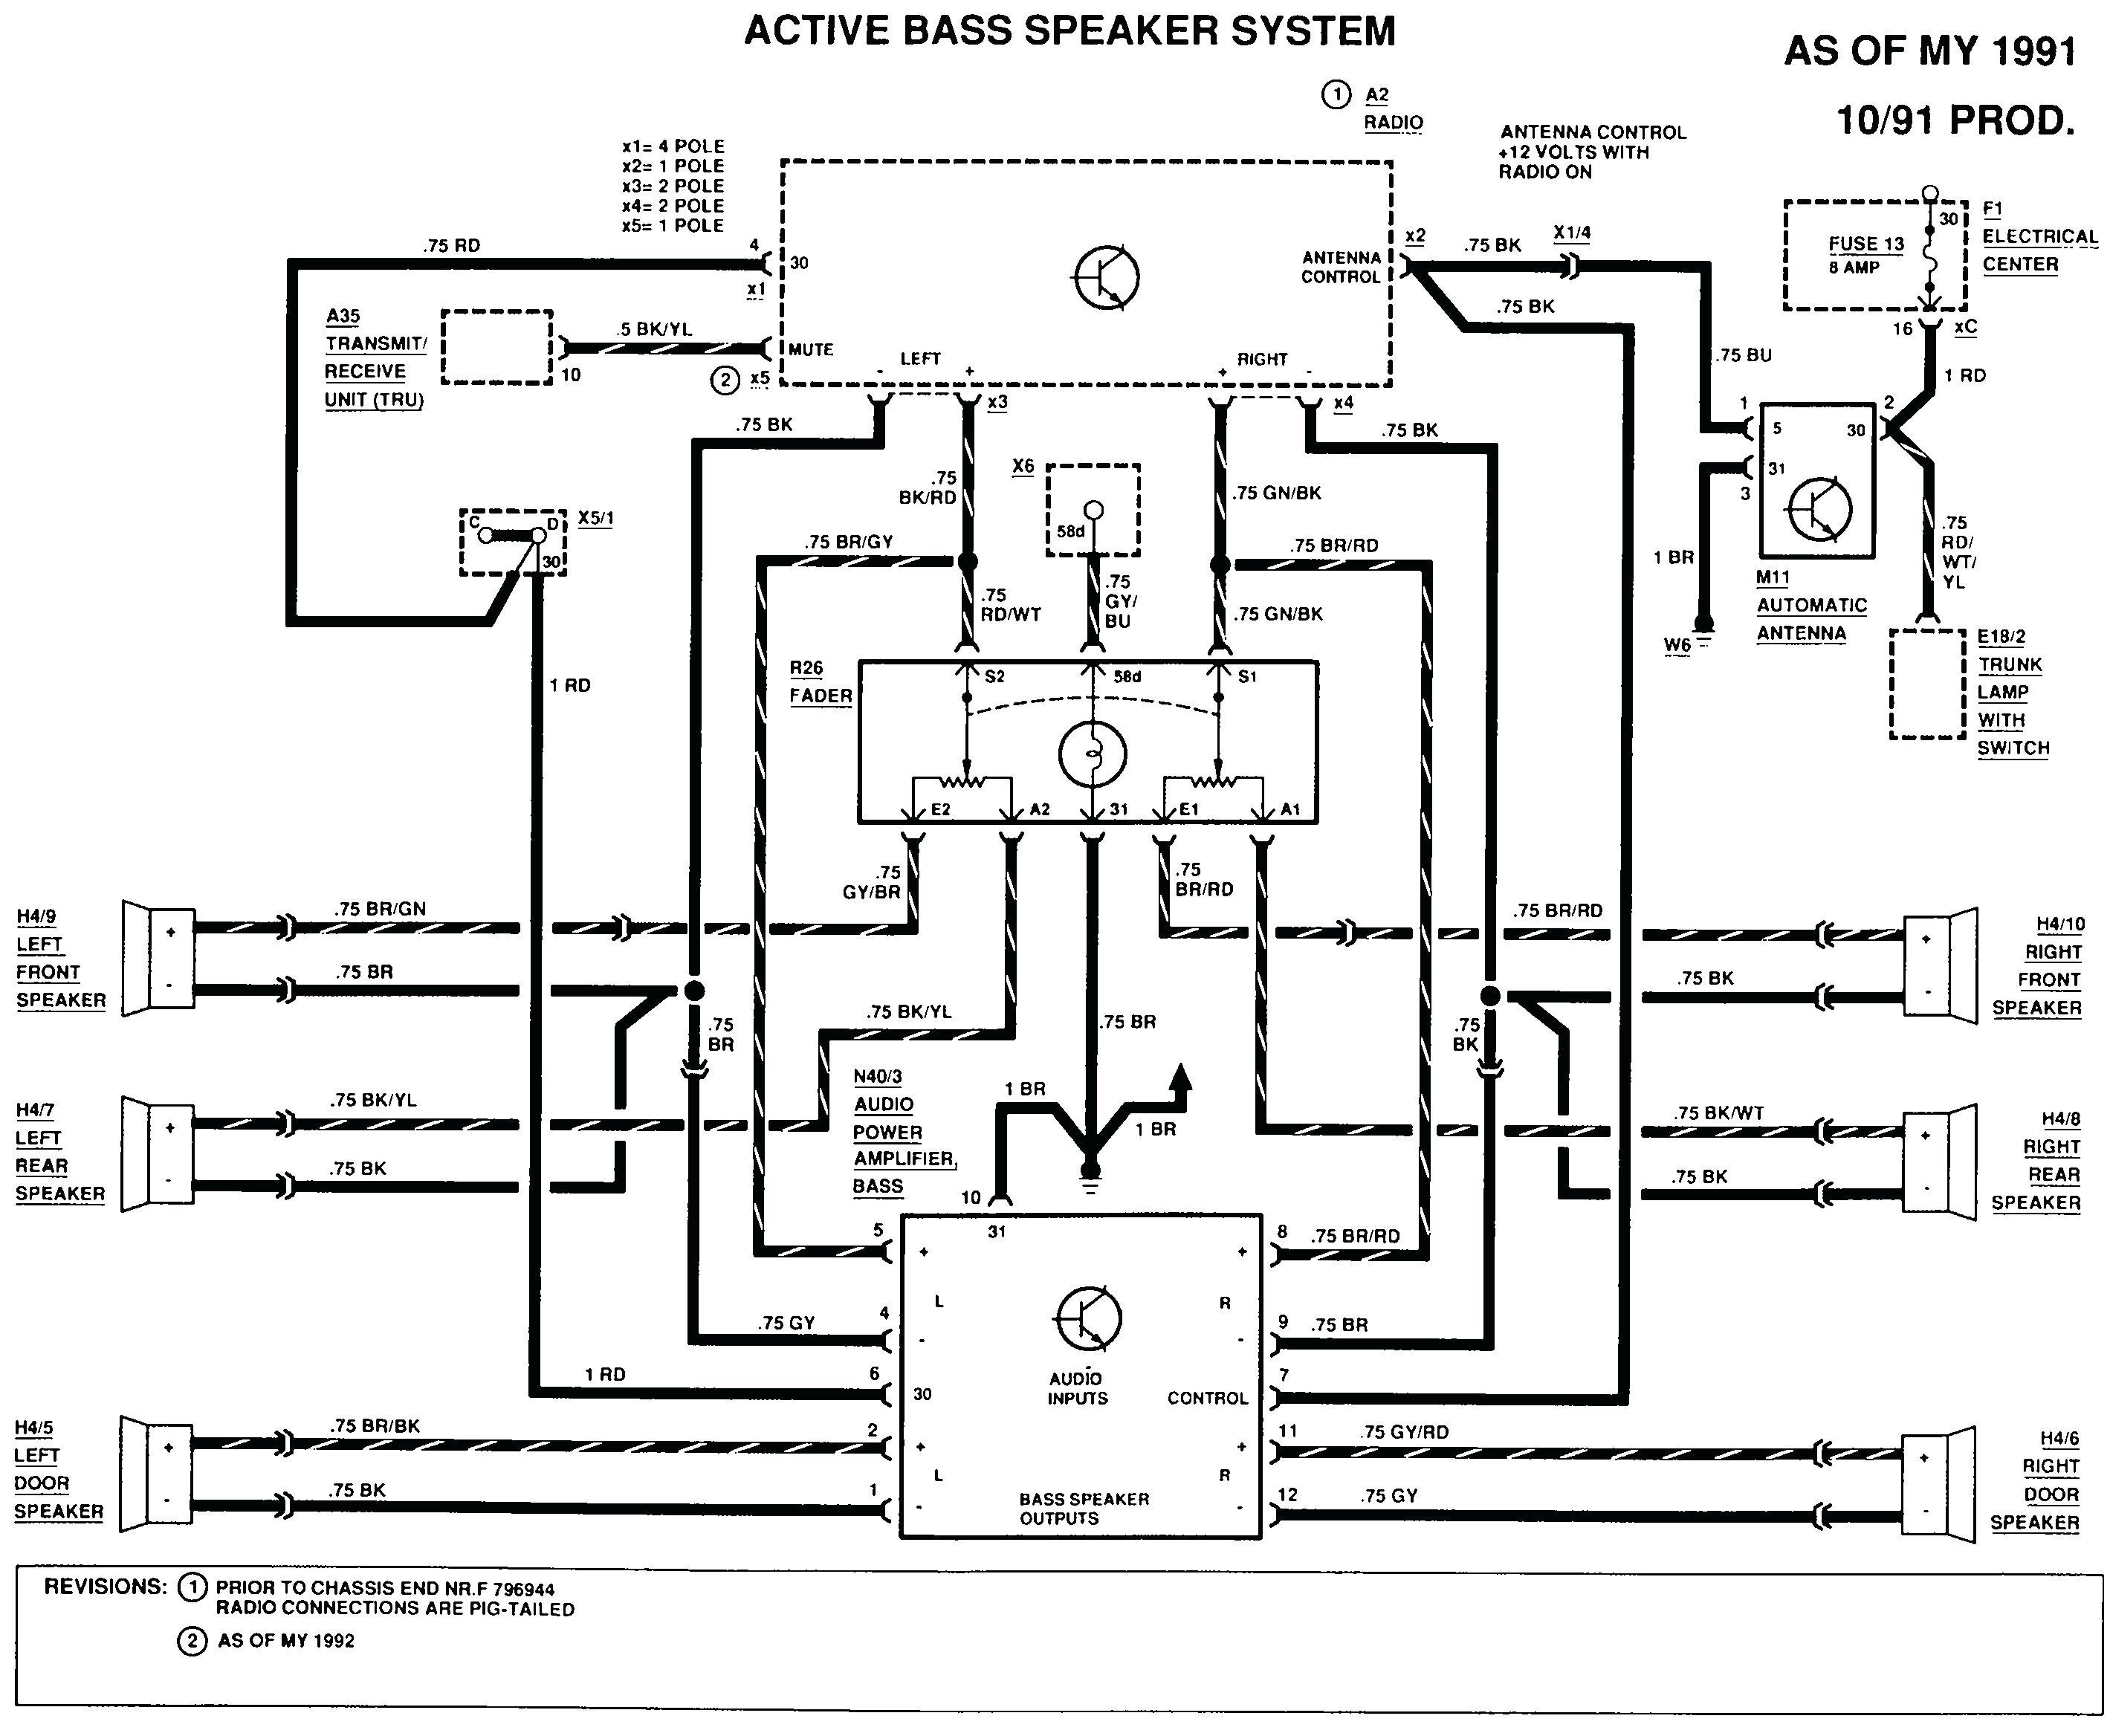 Whole House Audio Speaker Wiring | Wiring Library - Whole House Audio System Wiring Diagram